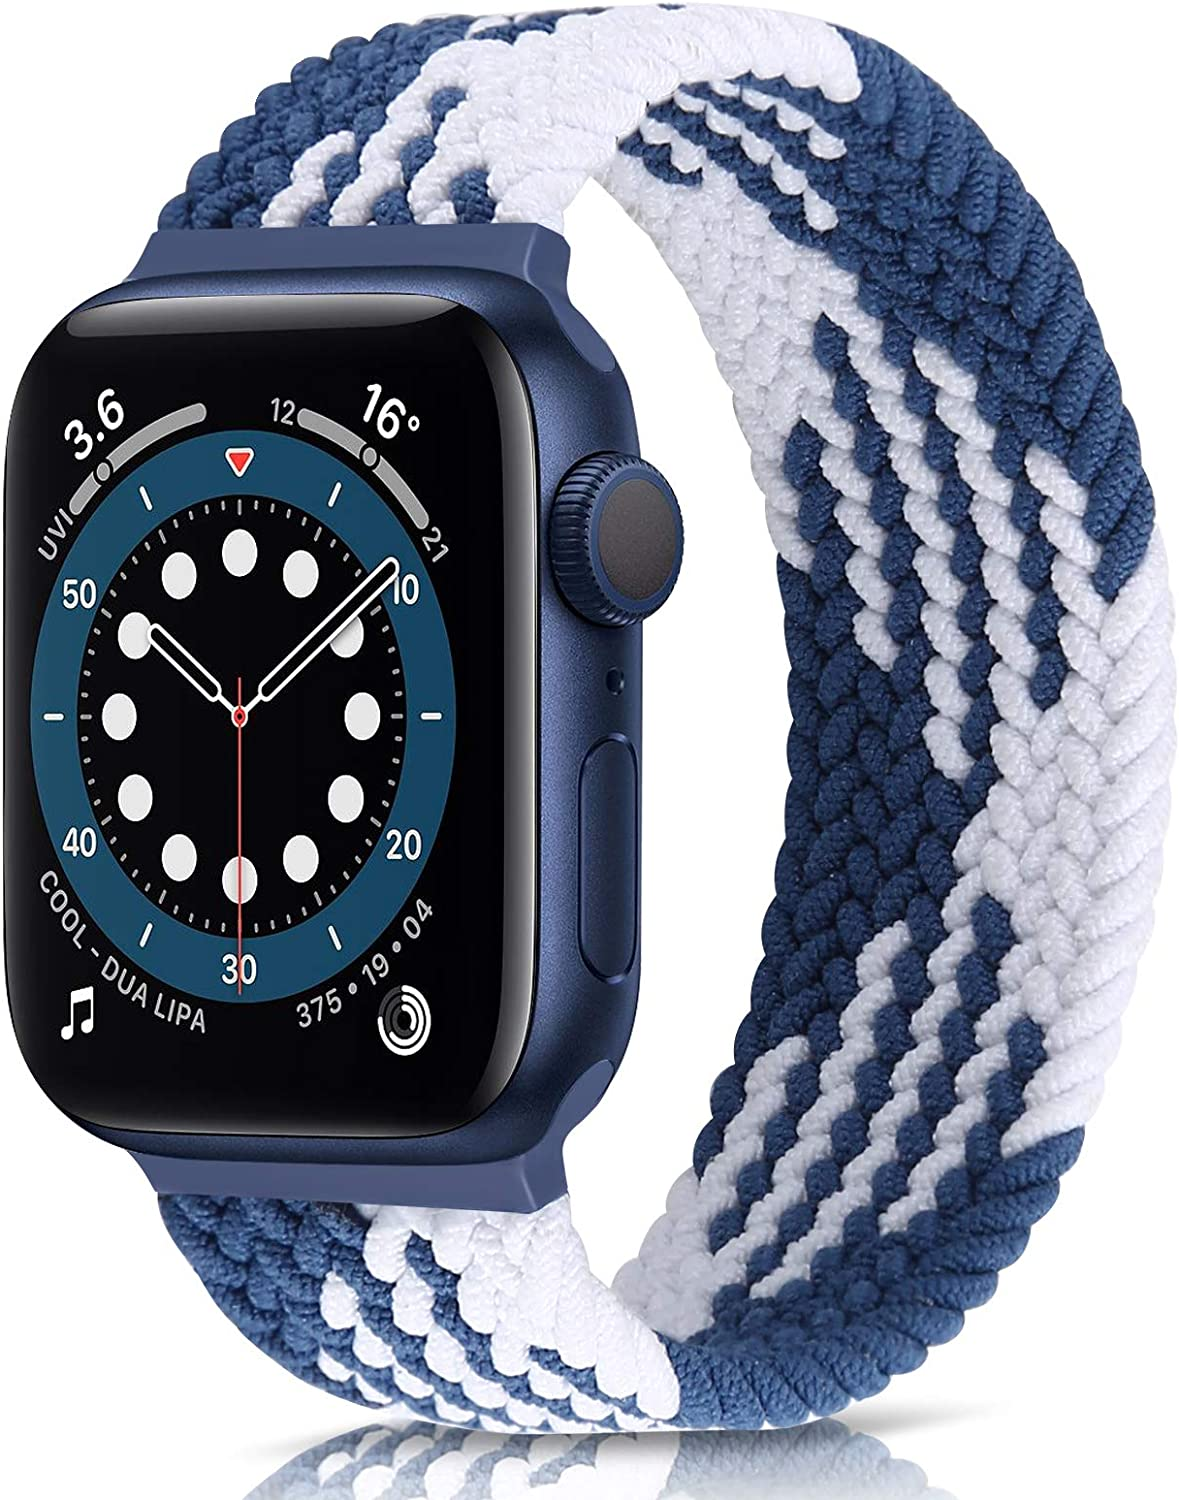 AVOD Braided Solo Loop Watch Band Compatible for Apple Watch SE Series 6 Straps 44mm 42mm 40mm 38mm Elastic Nylon Straps for iWatch 6/SE/5/4/3/2/1